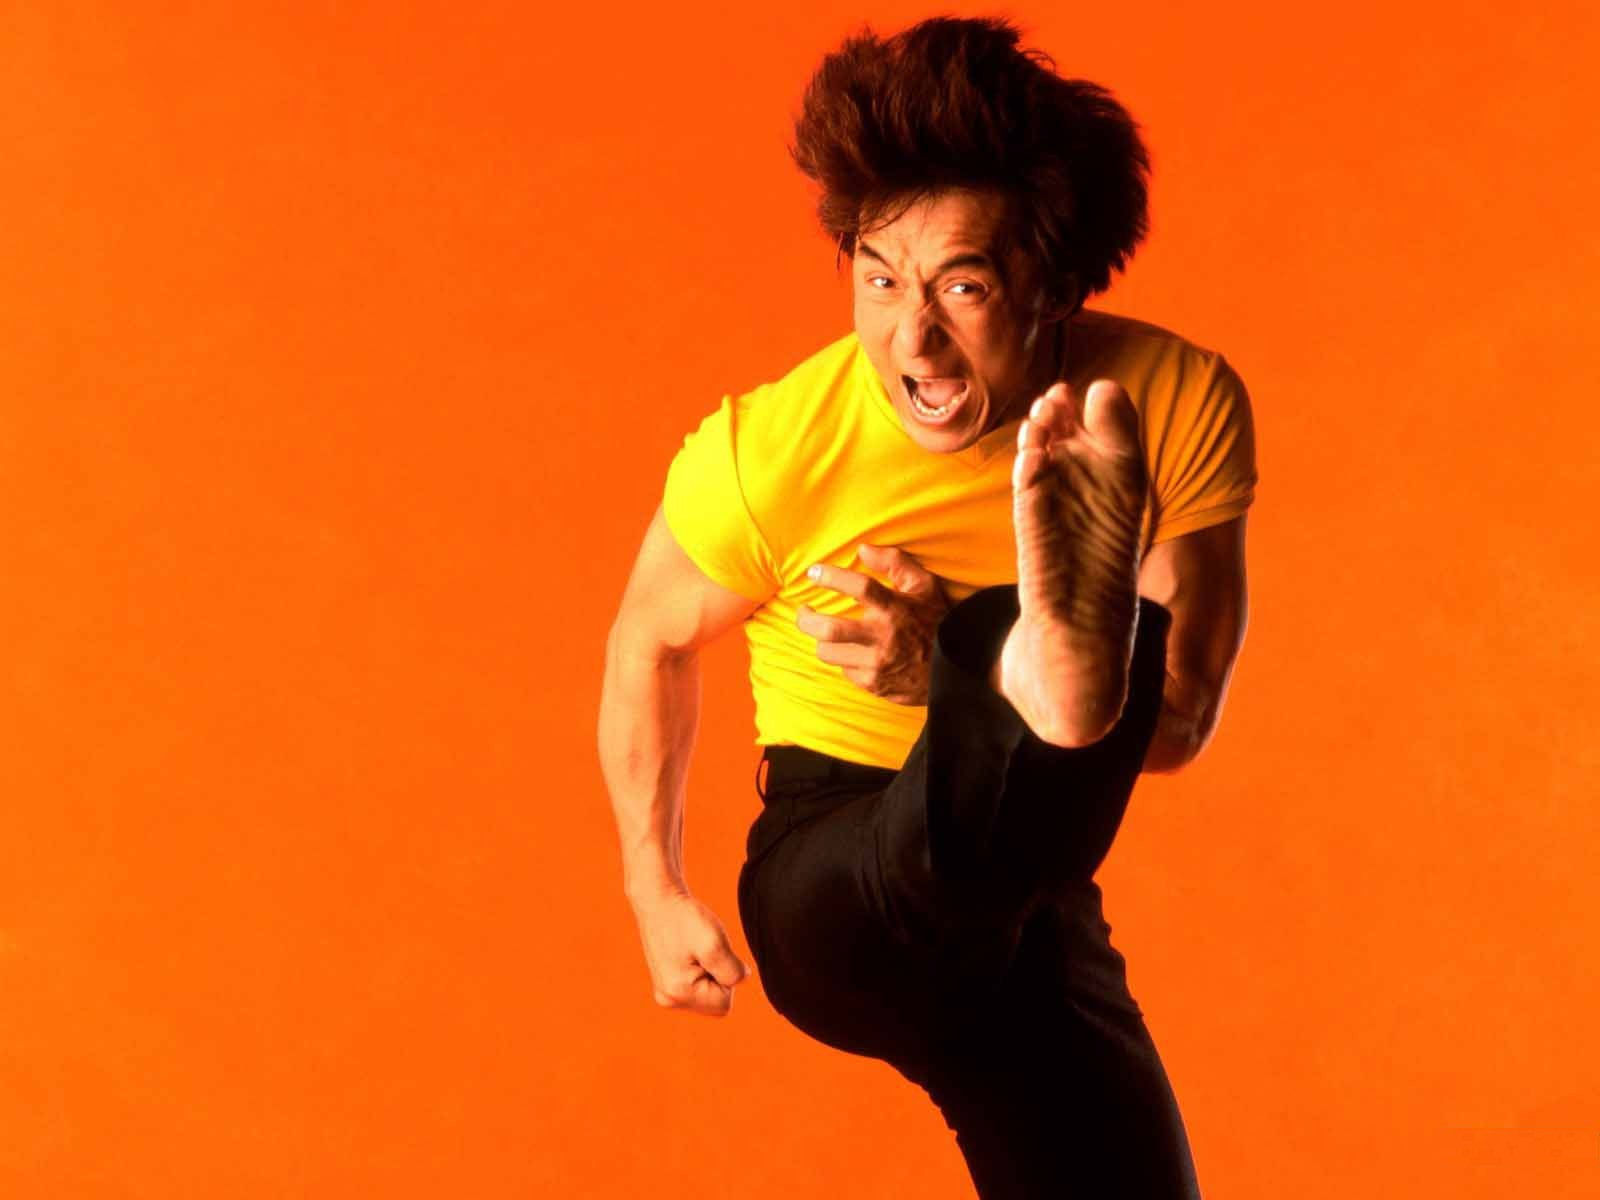 Jackie Chan Wallpaper 15